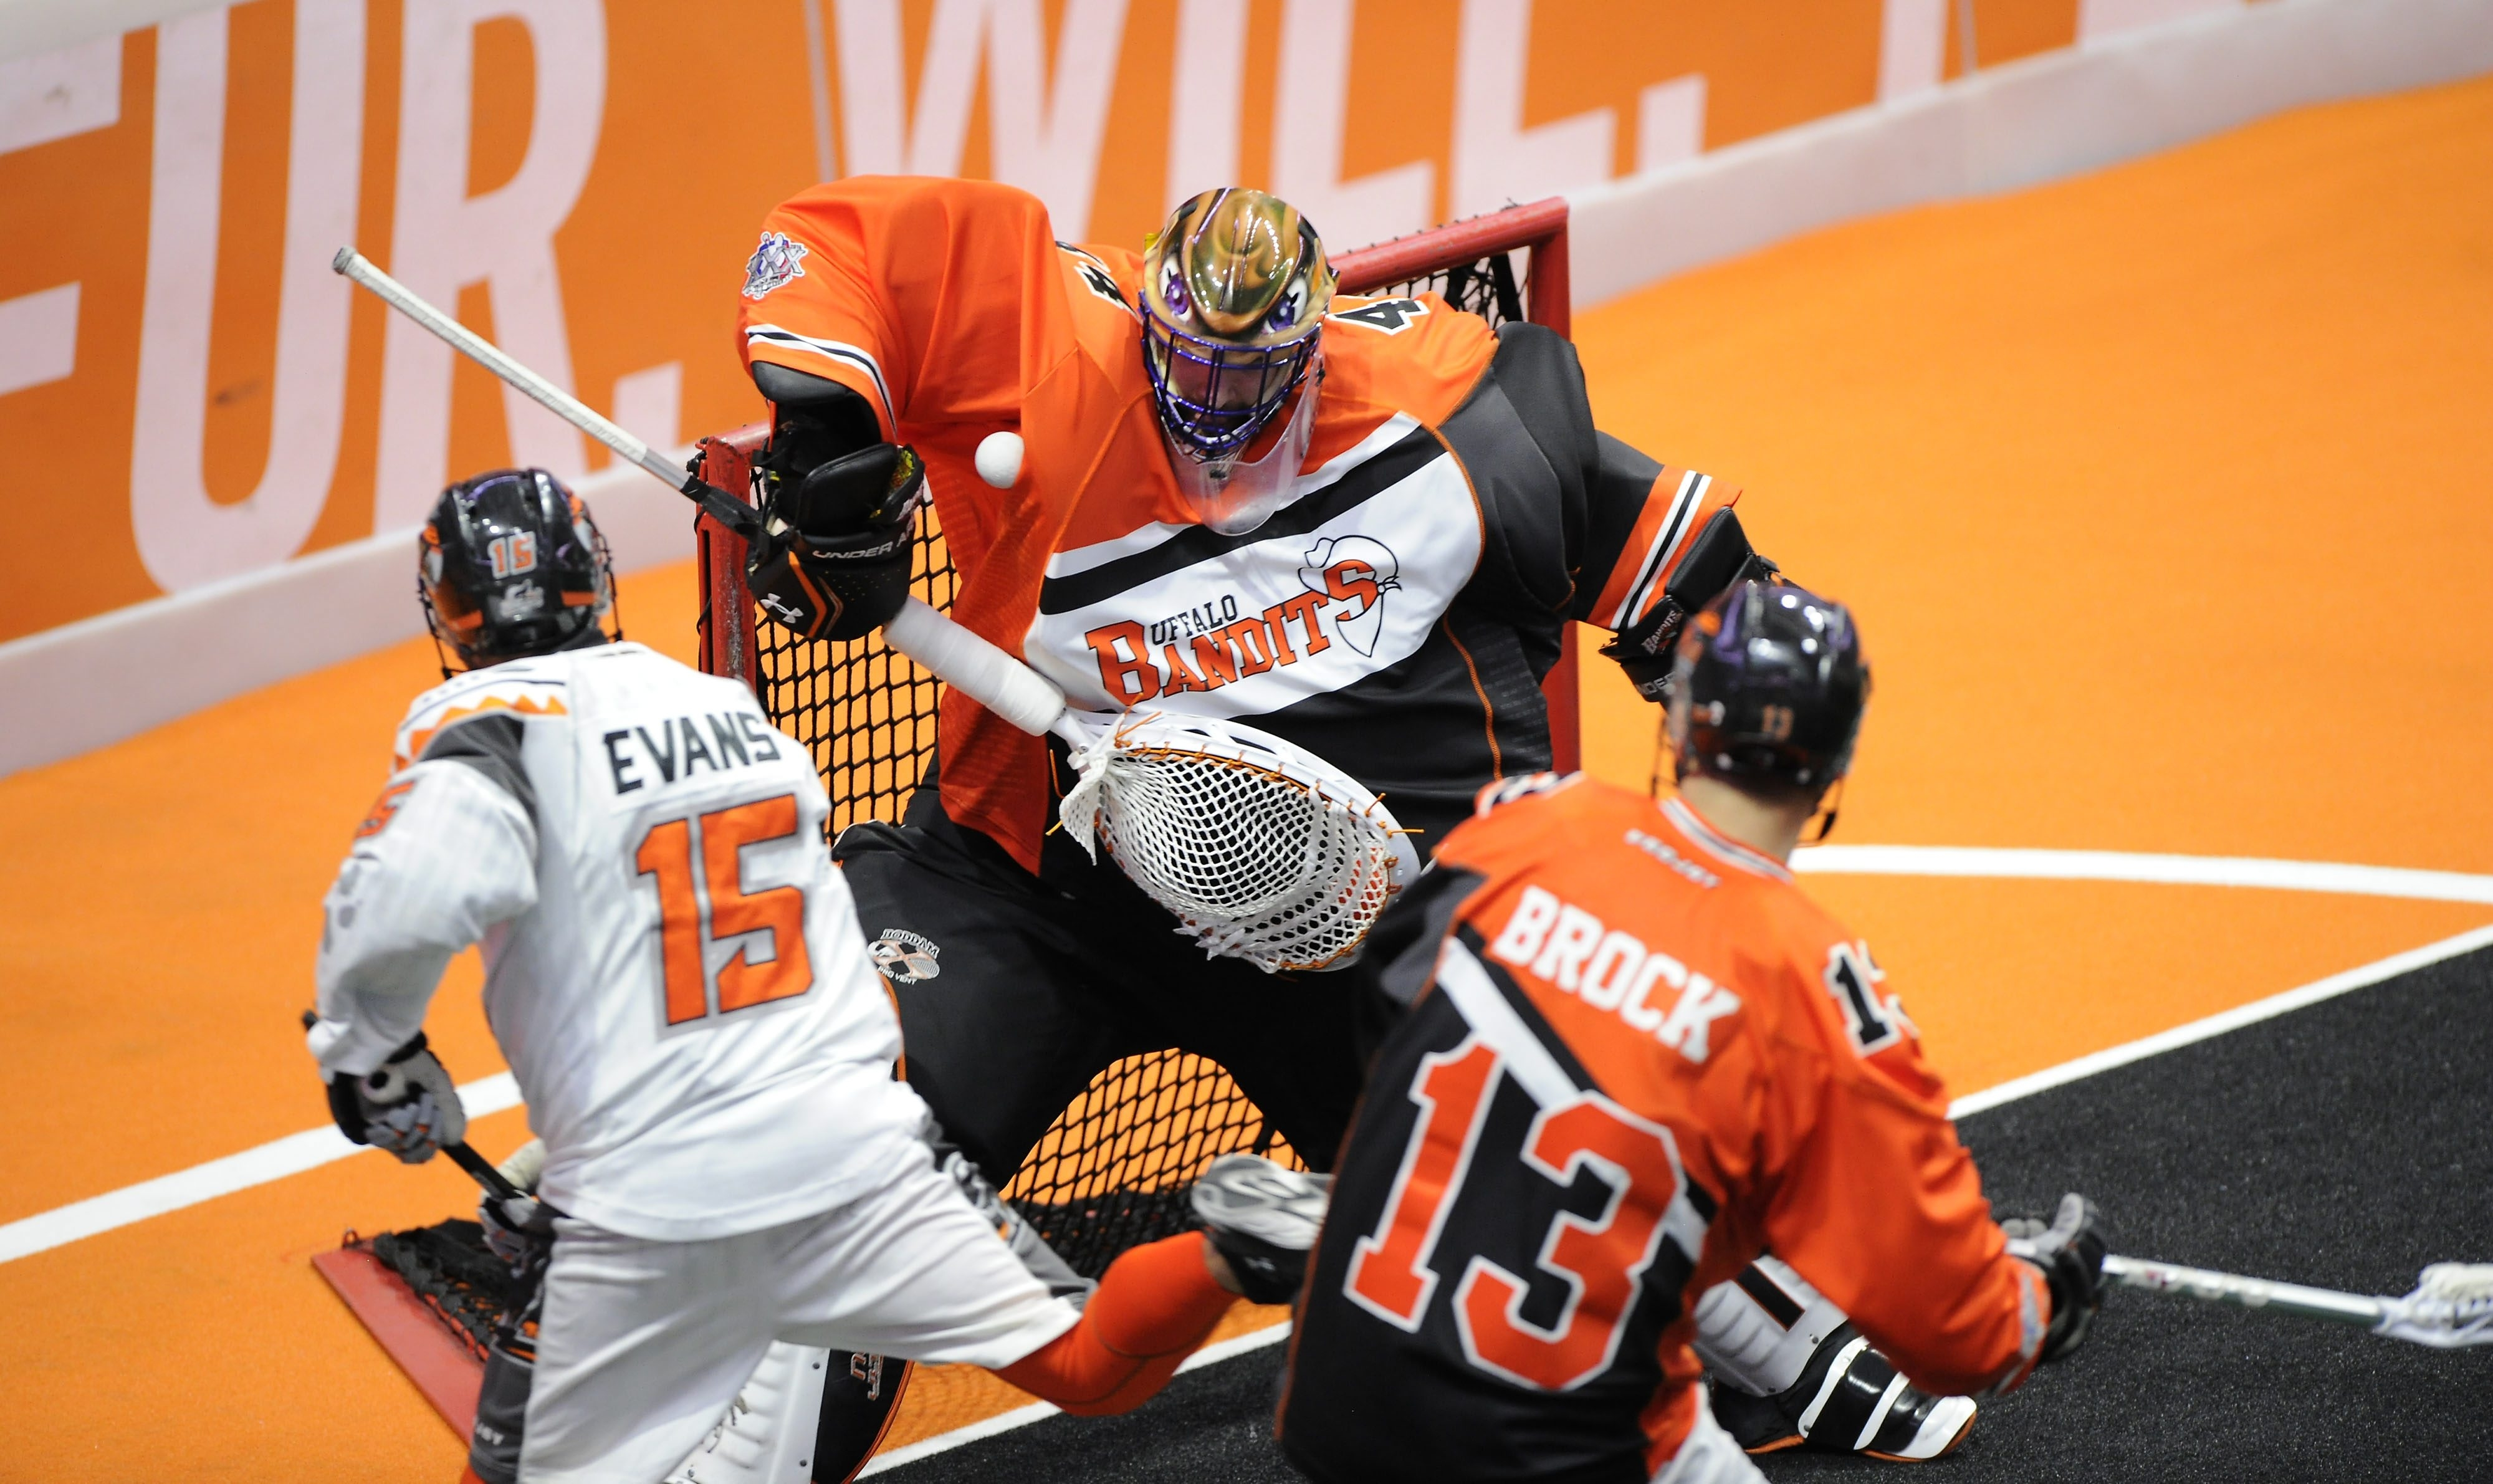 Goaltender Anthony Cosmo and the Bandits kept New England offensive ace Shawn Evans in check in Monday's playoff victory.